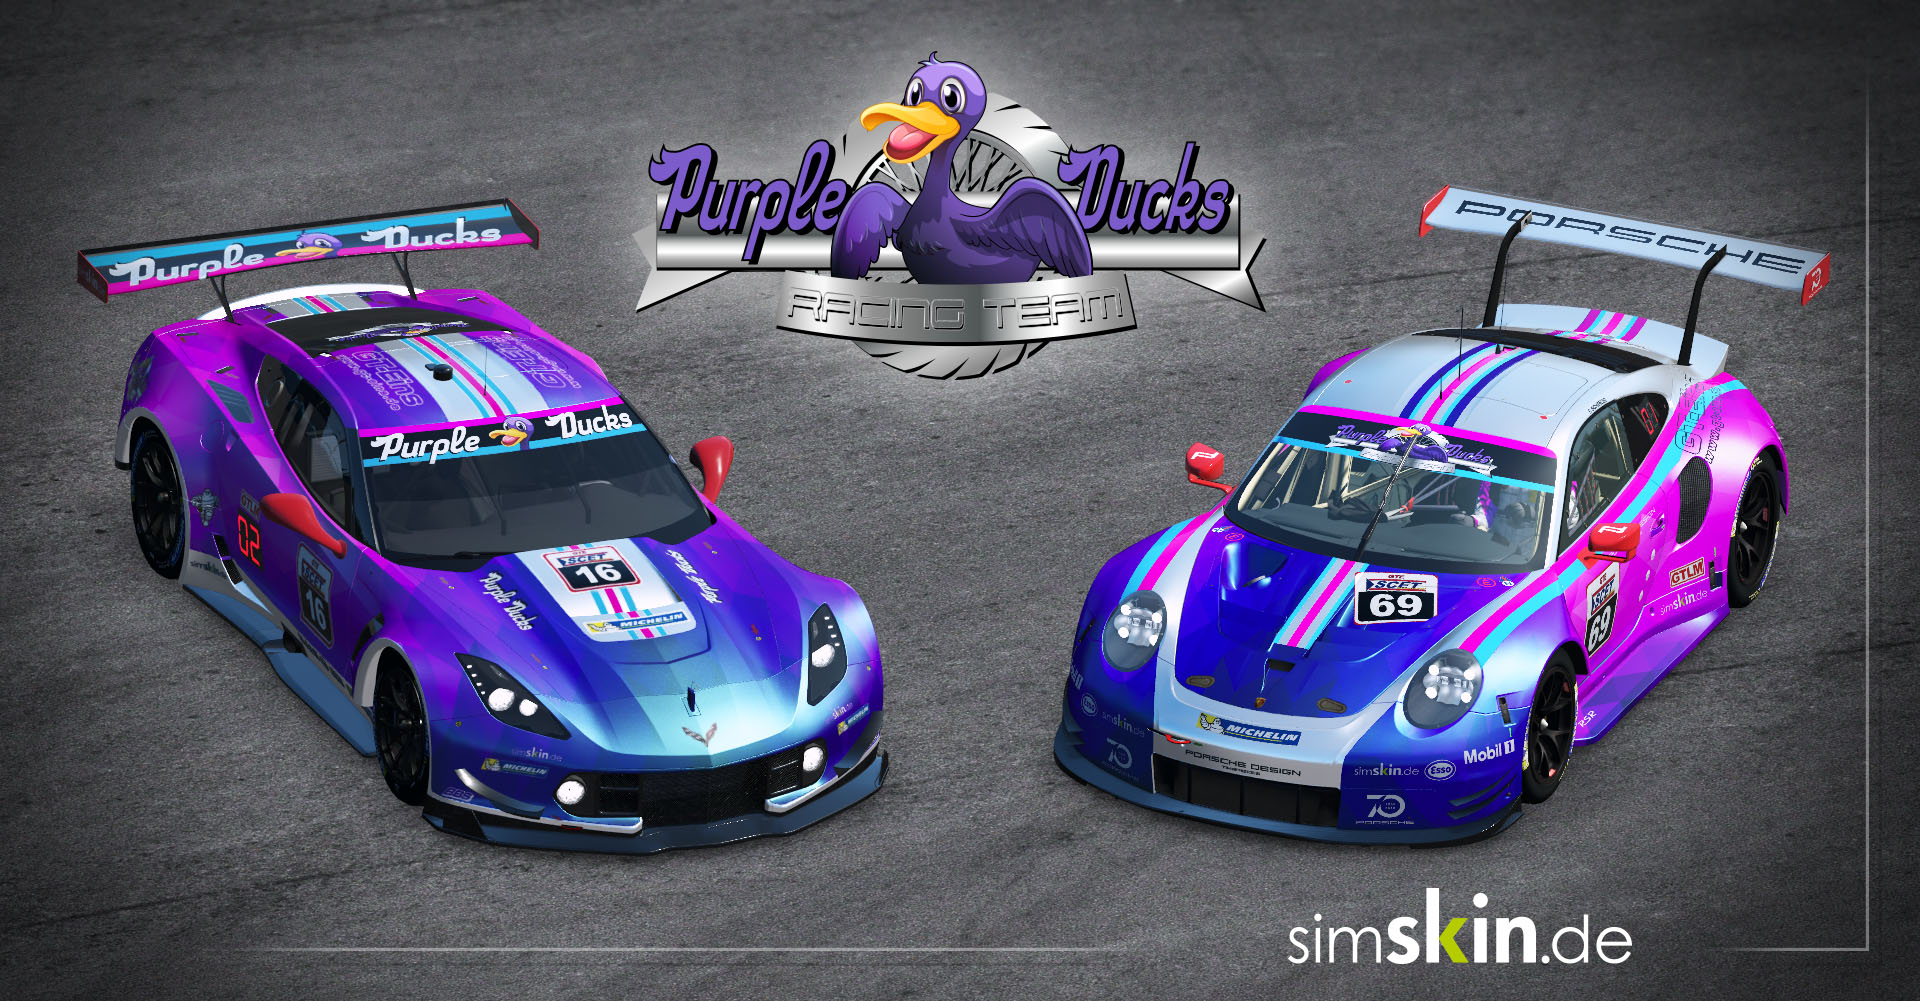 Team_Purple-Ducks_01.jpg